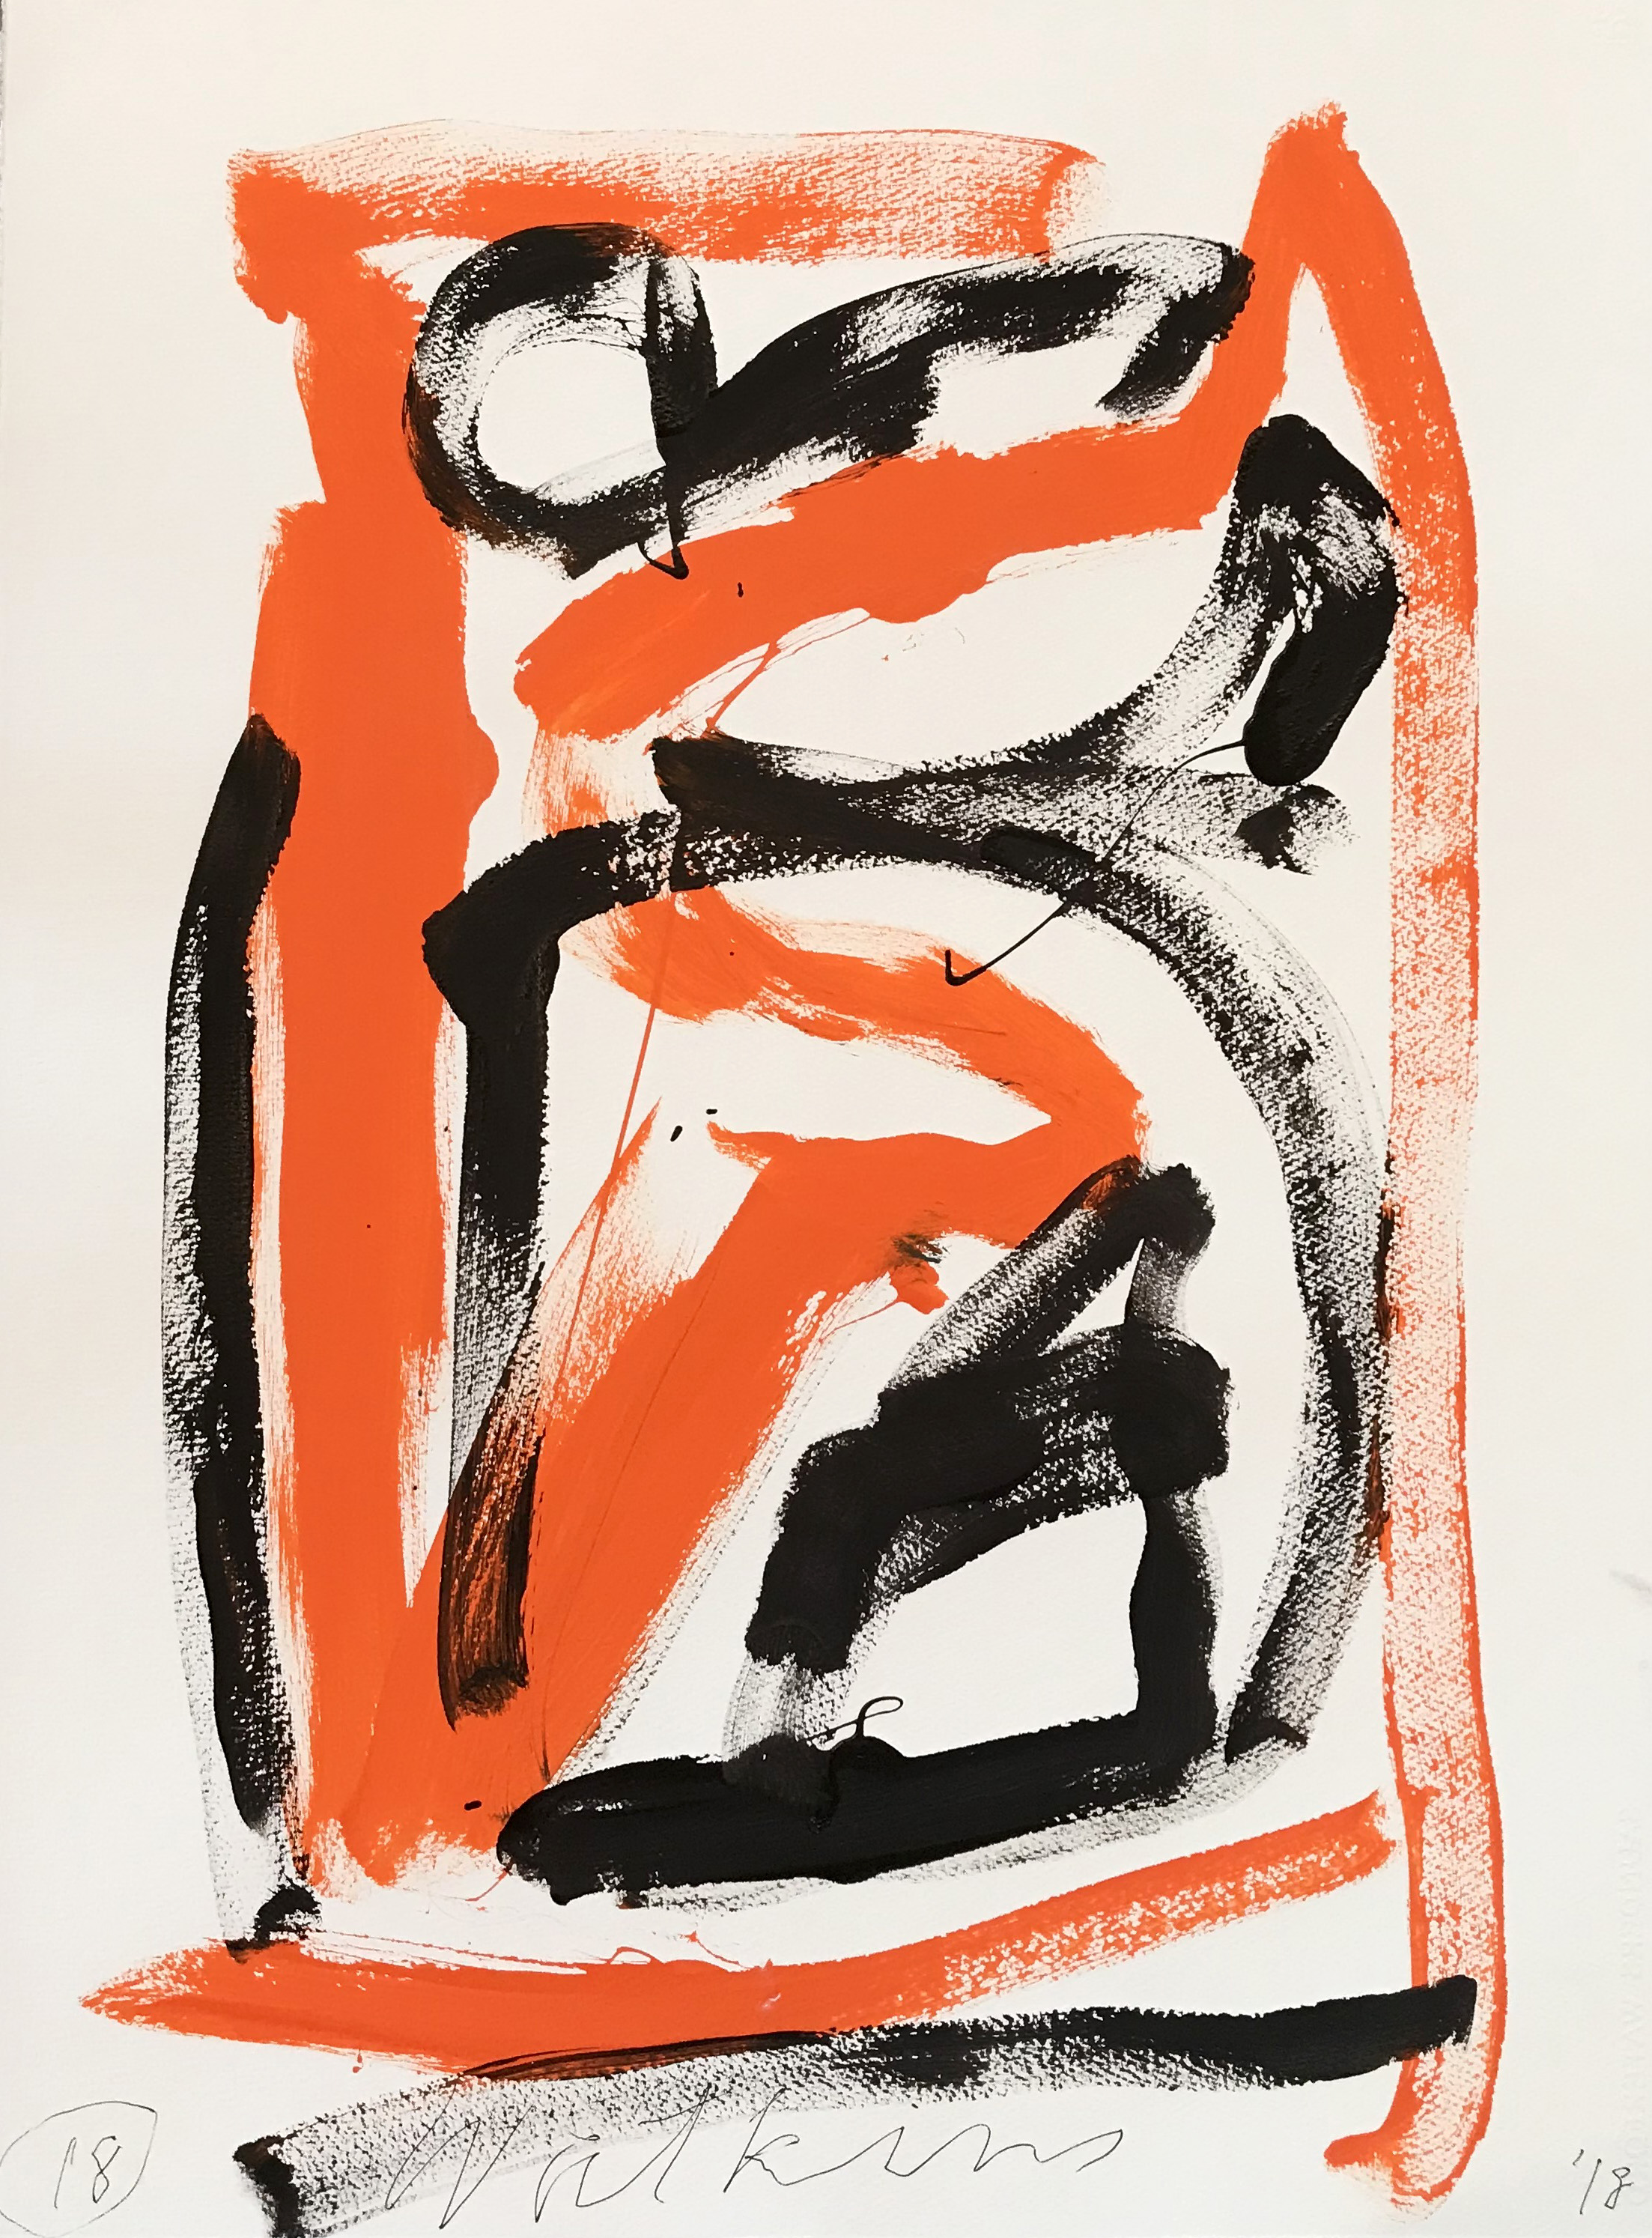 DICK WATKINS  Untitled drawing 18 , 2018 acrylic on 300gsm paper 76 x 56 cm